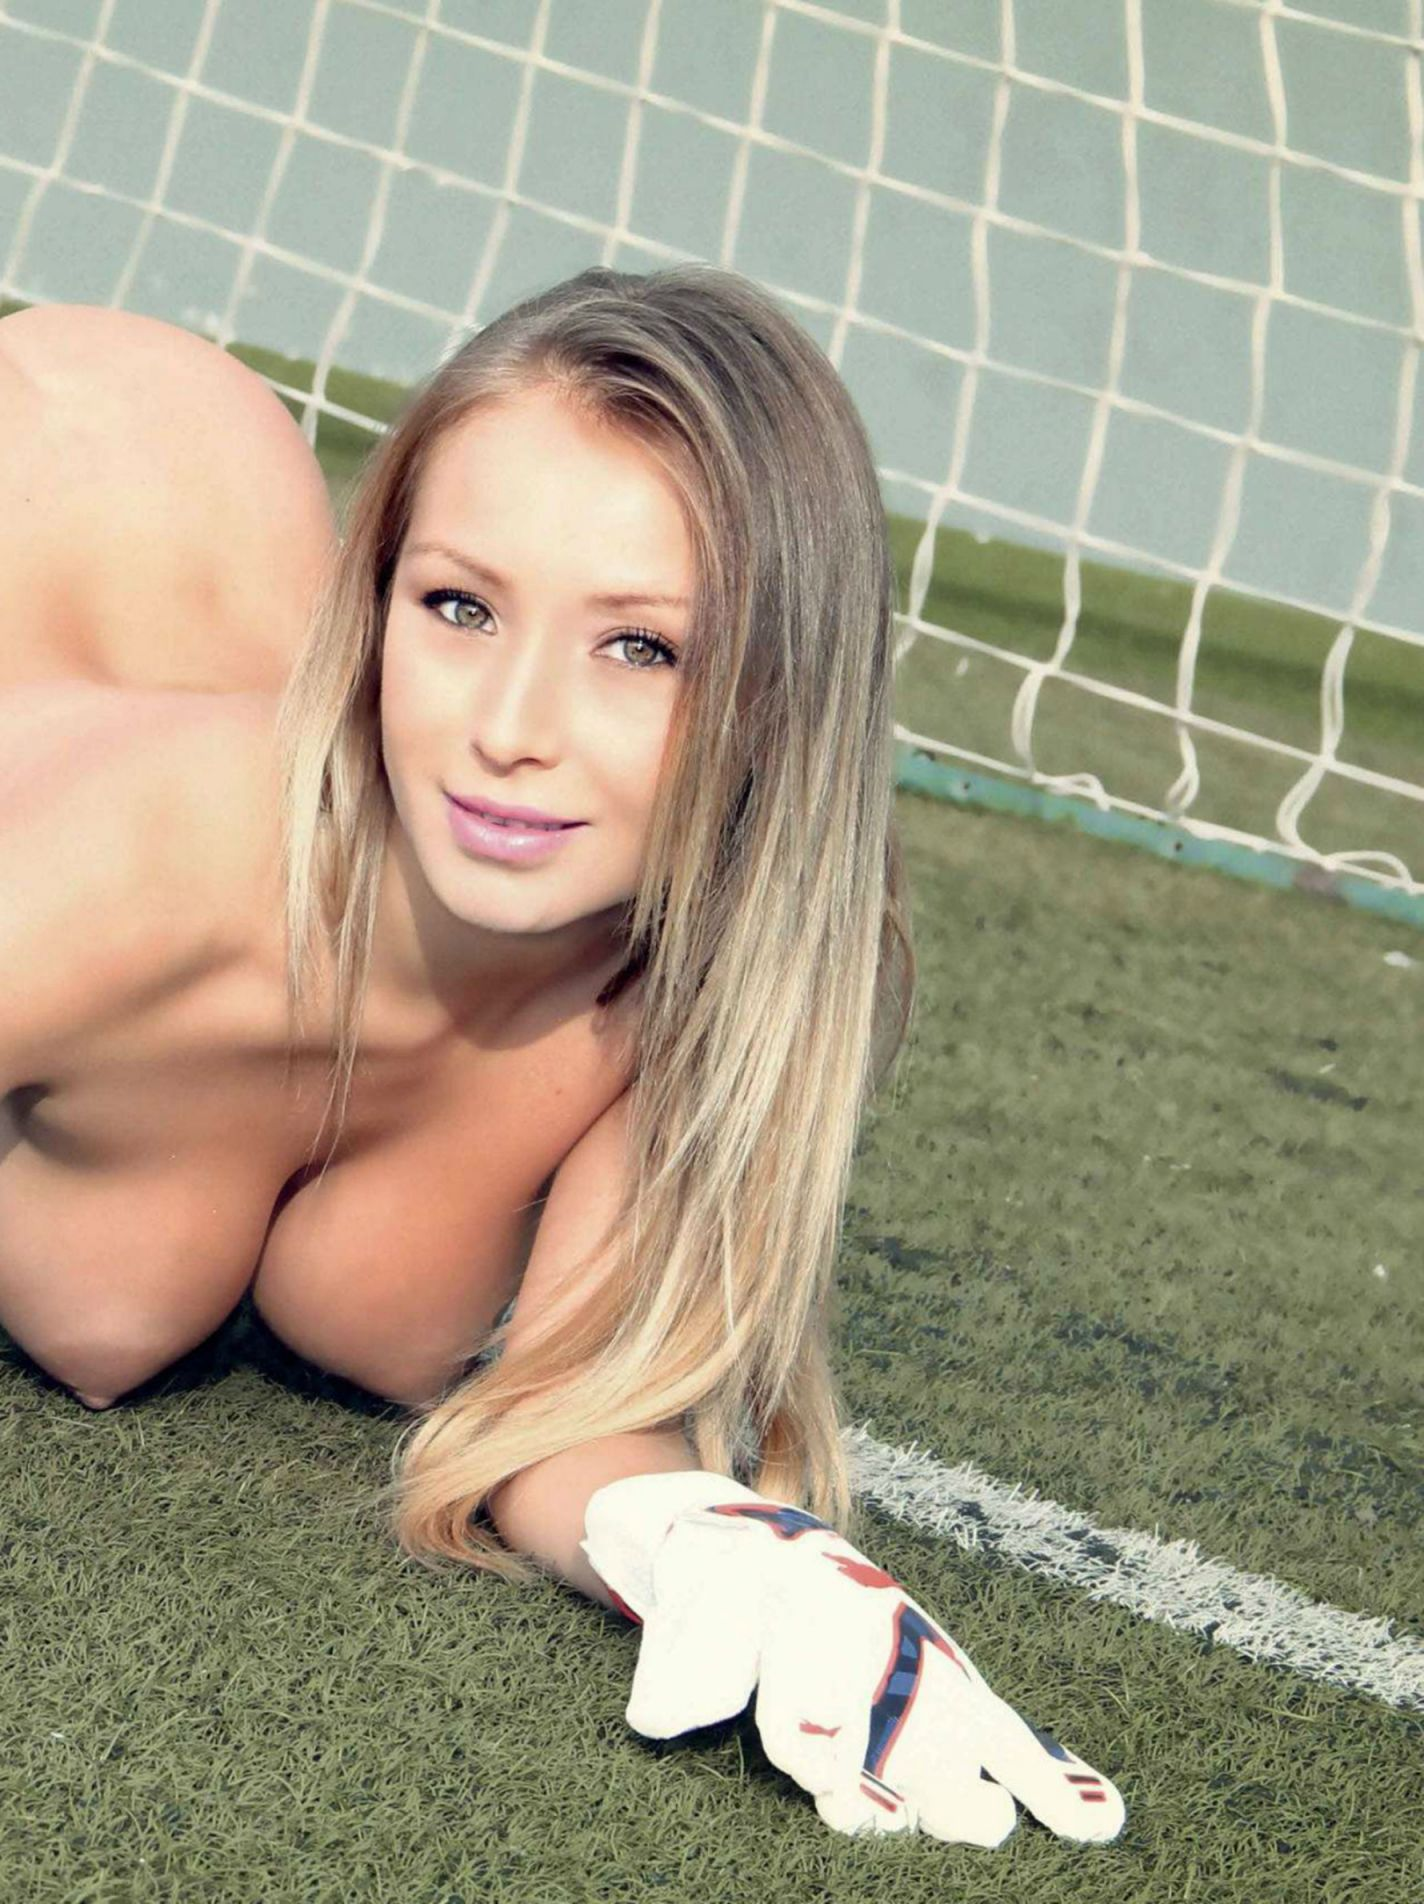 Ronaldo's girl daniella chavez has naked playboy pictures and they are here